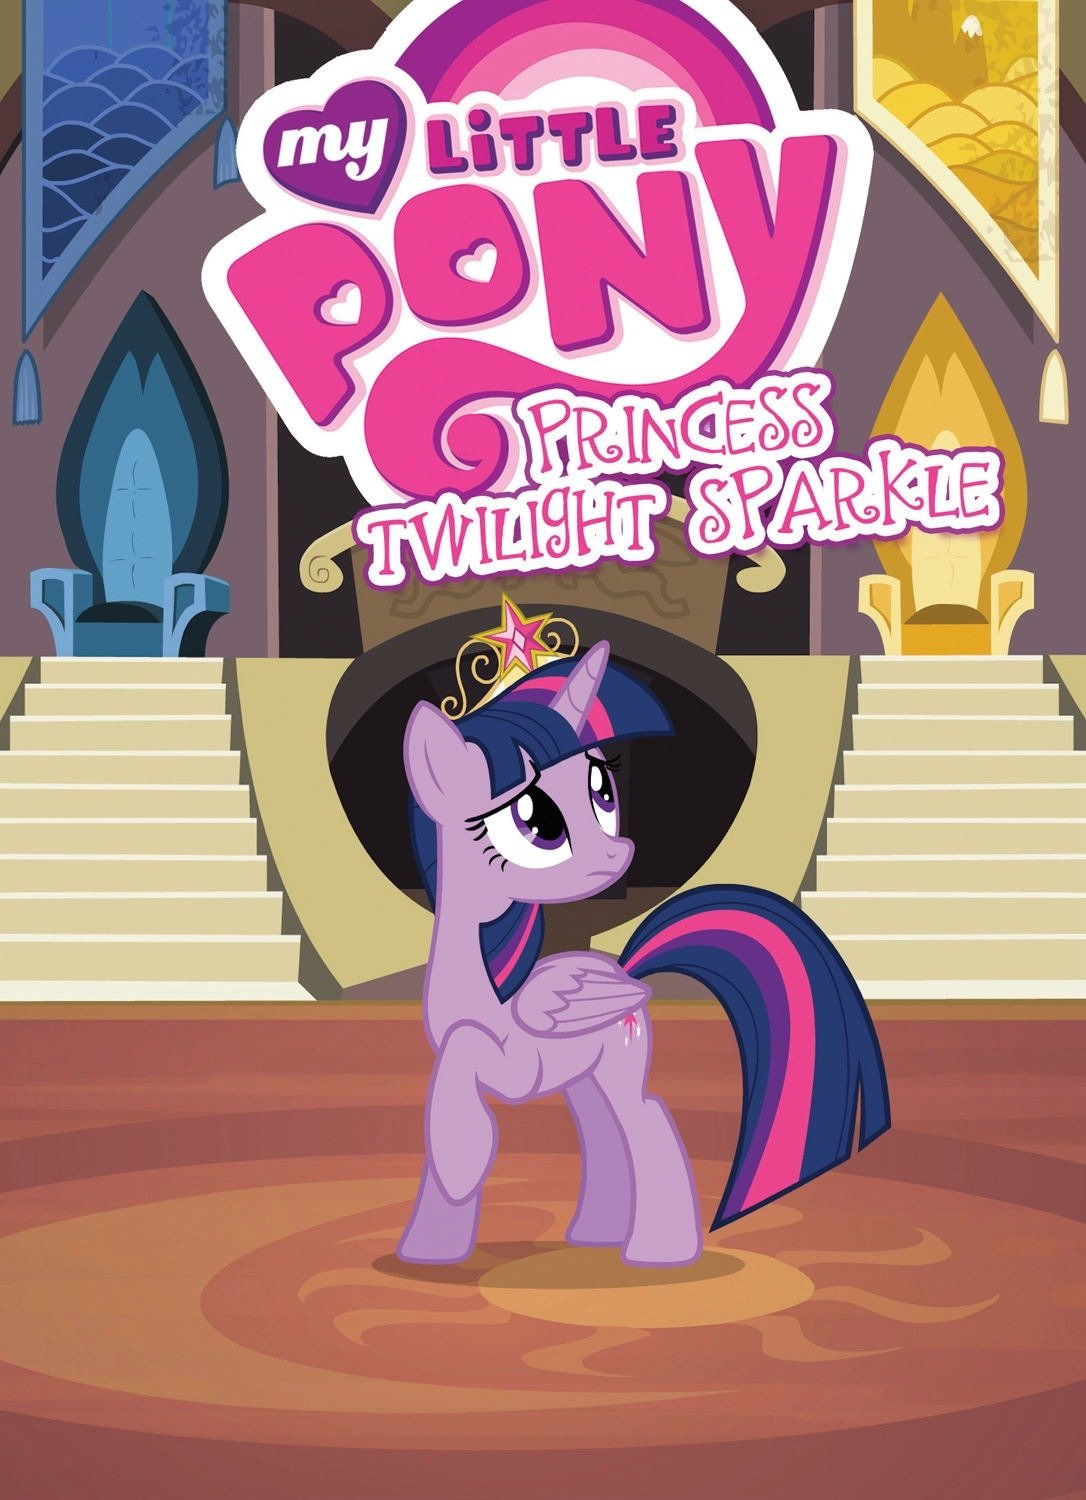 My Little Pony: Princess Twilight Sparkle